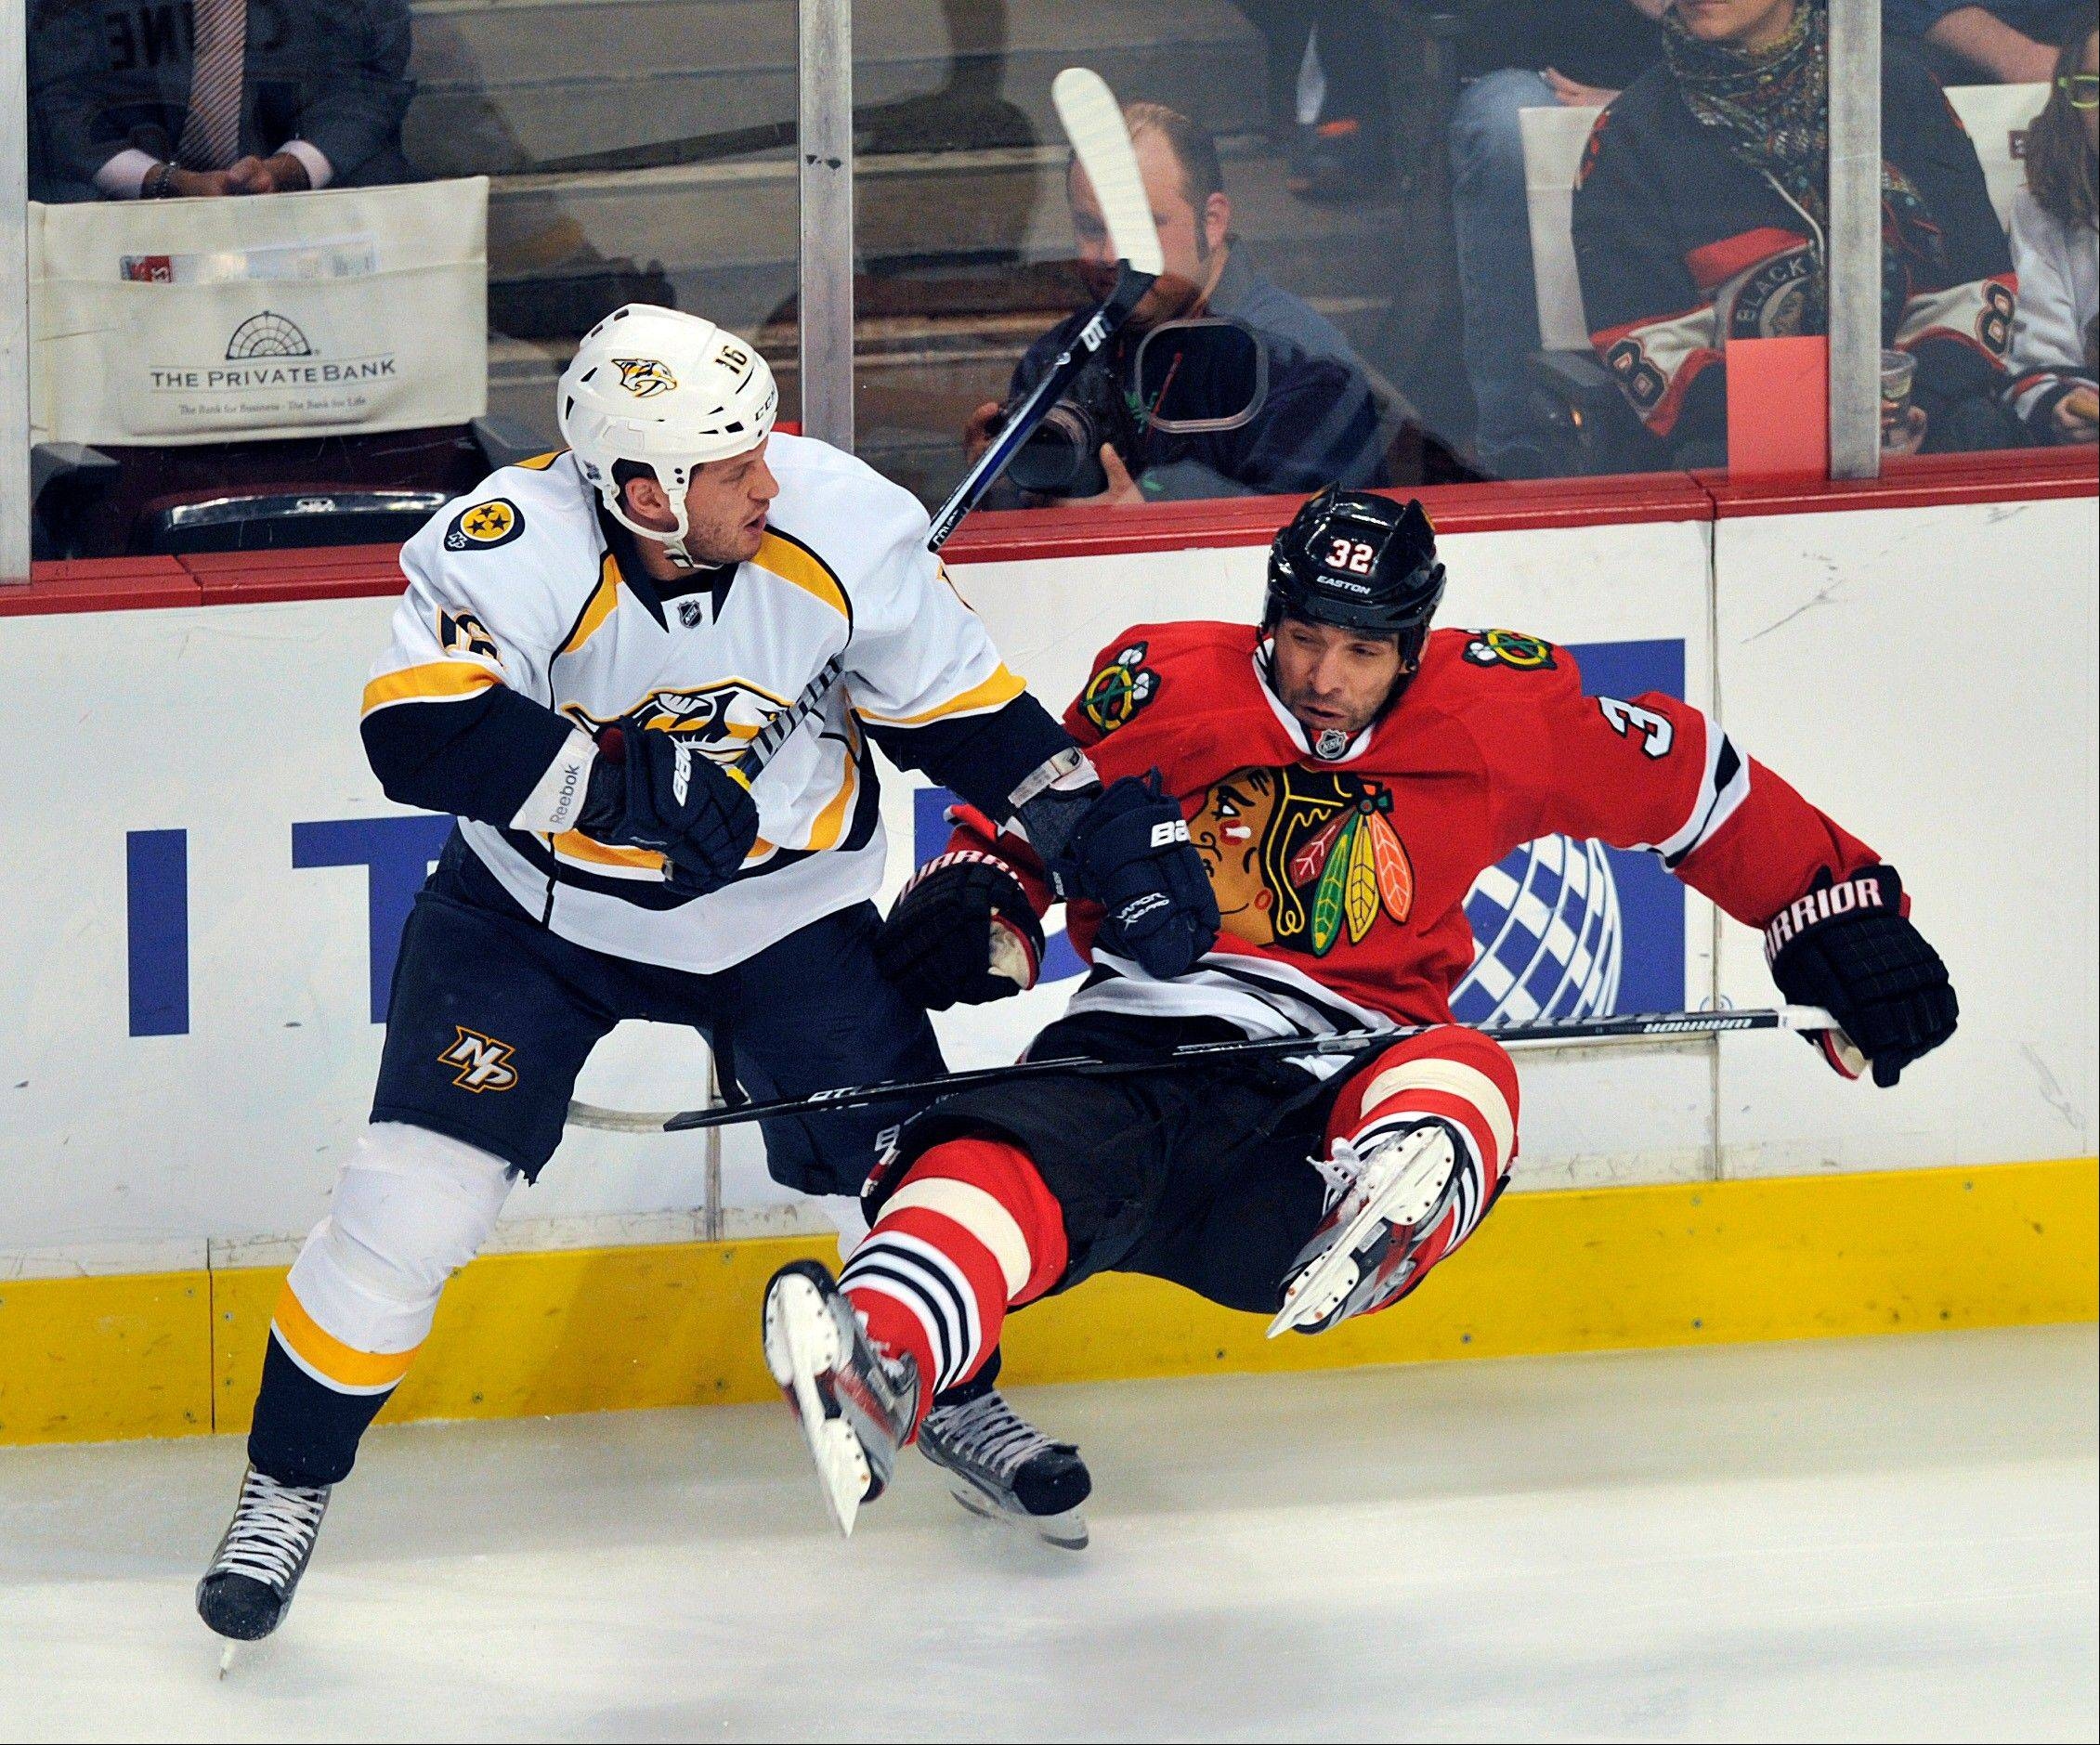 Nashville Predators' Richard Clune left, checks the Chicago Blackhawks' Michal Rozsival during the first period of an NHL hockey game Monday, April 1, 2013, in Chicago.